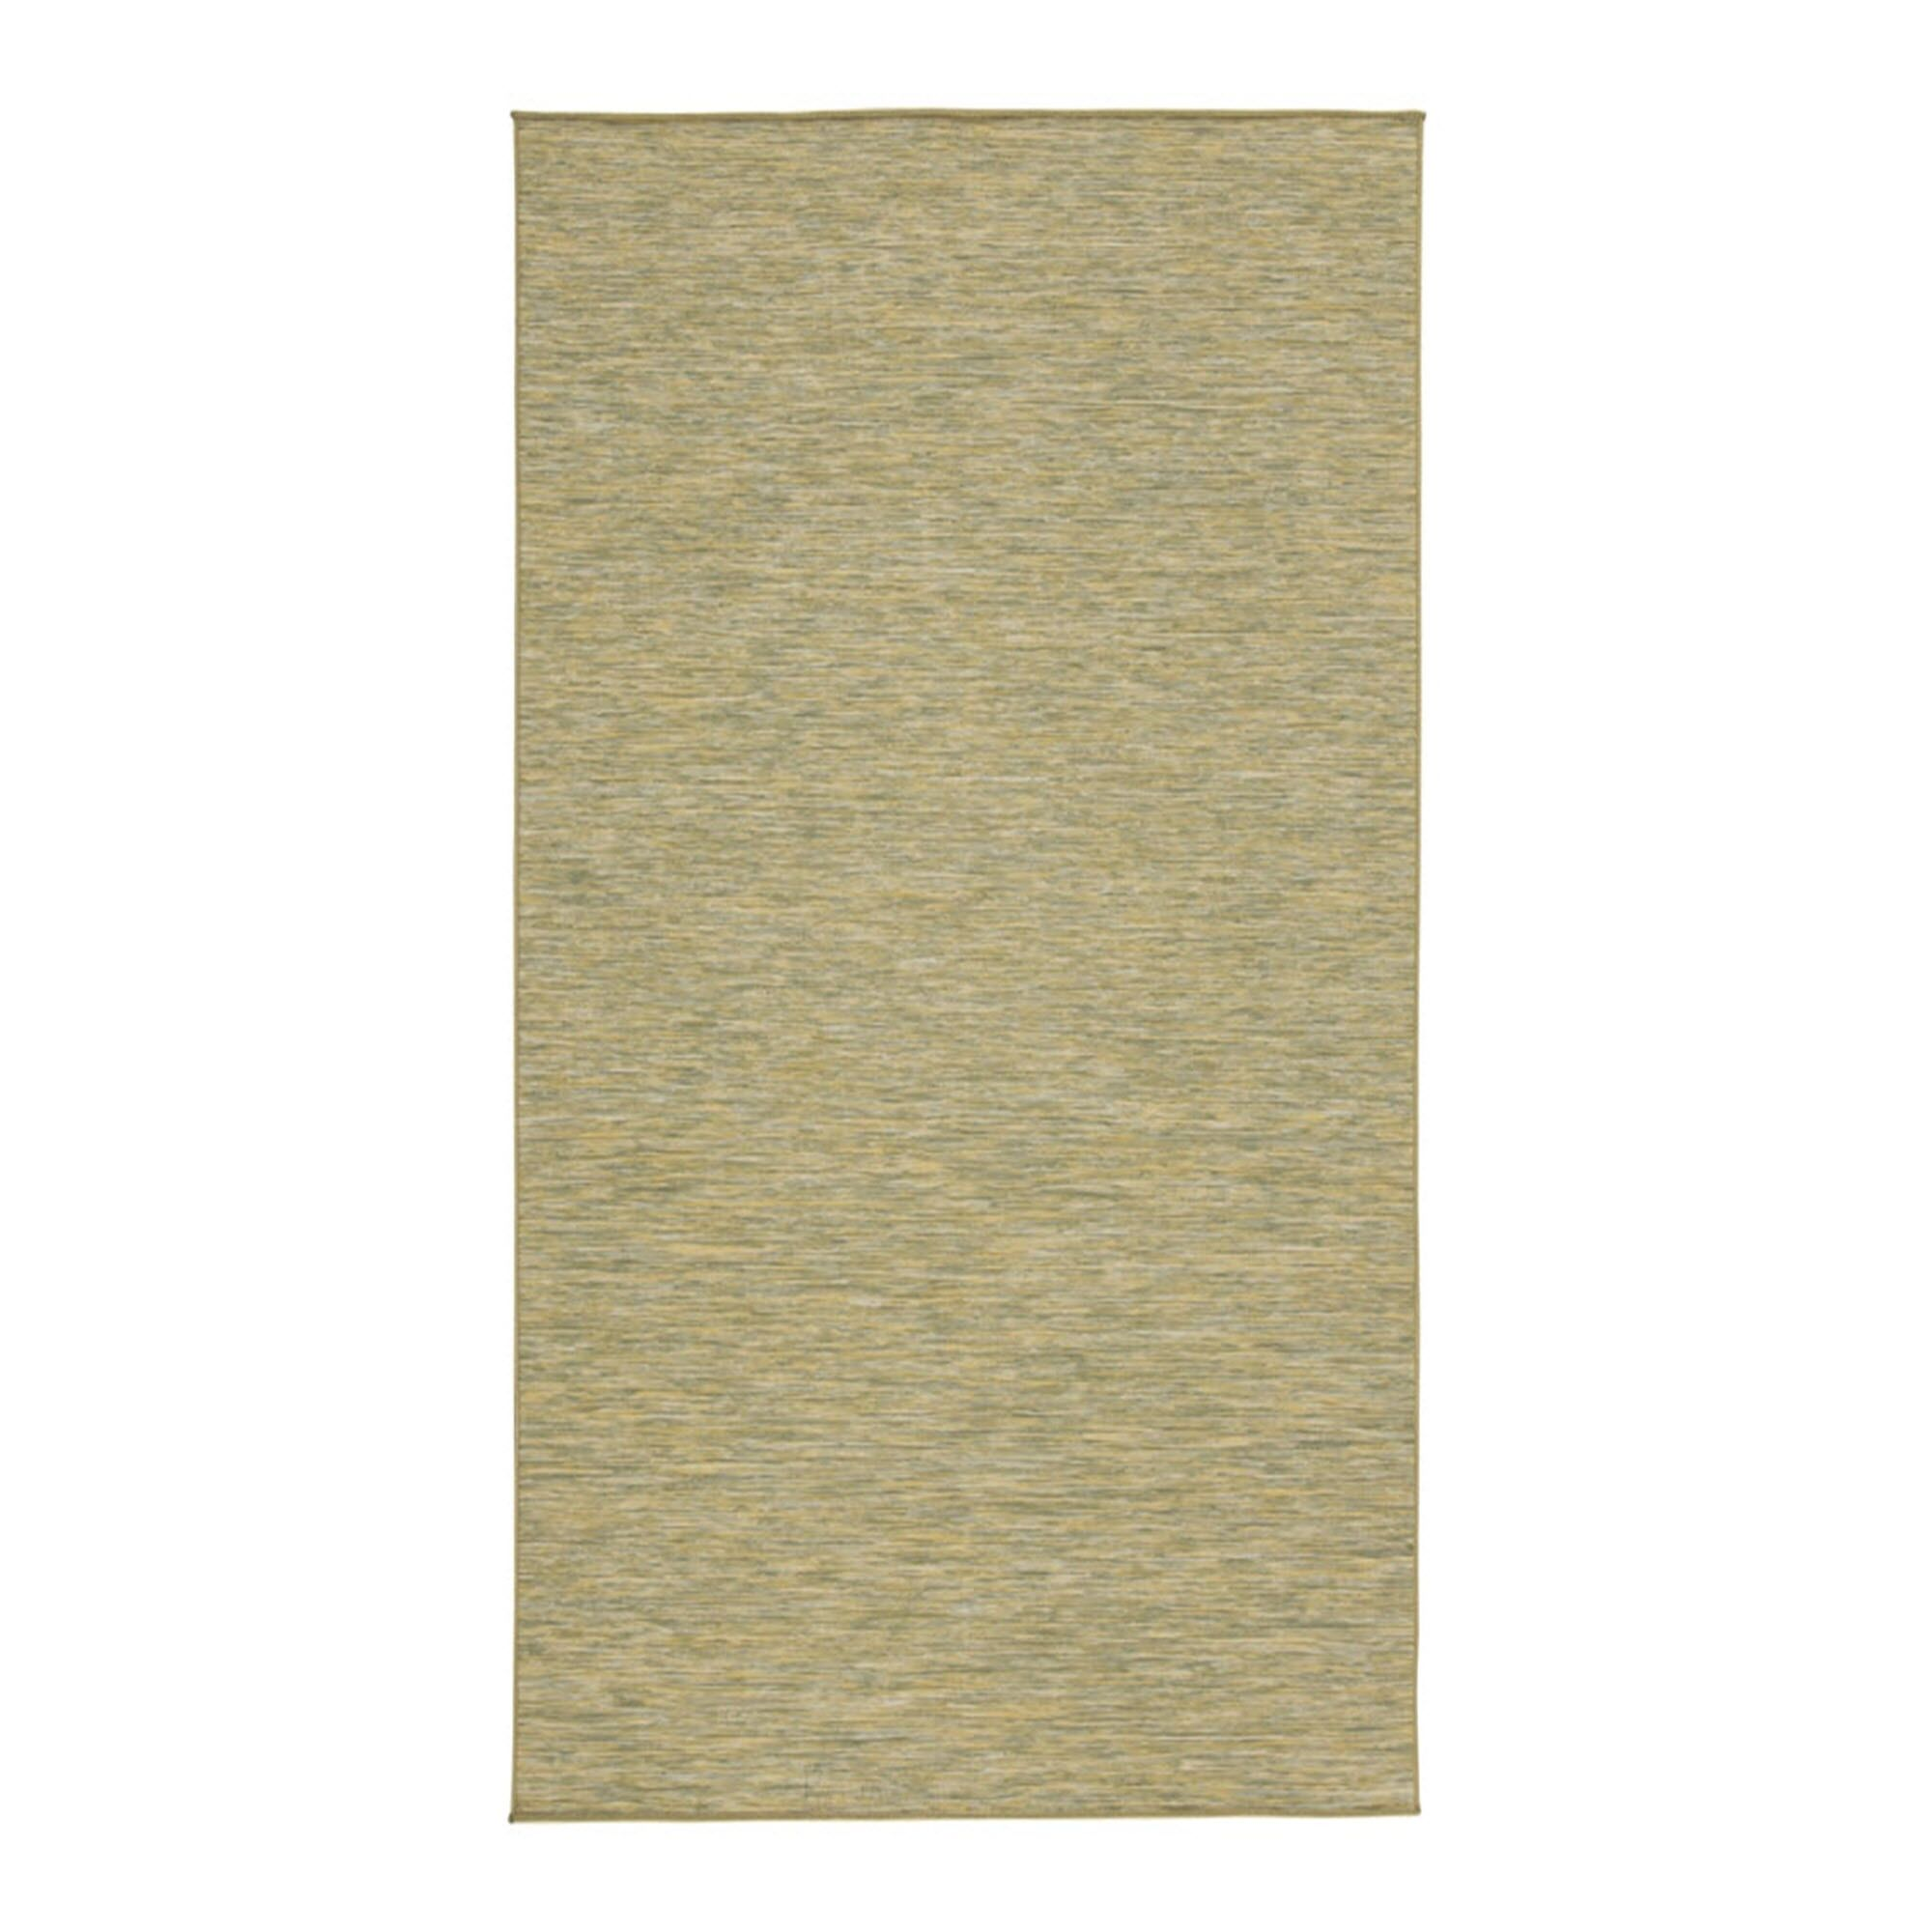 Koger Green Indoor/Outdoor Area Rug Rug Size: Rectangle 7'6